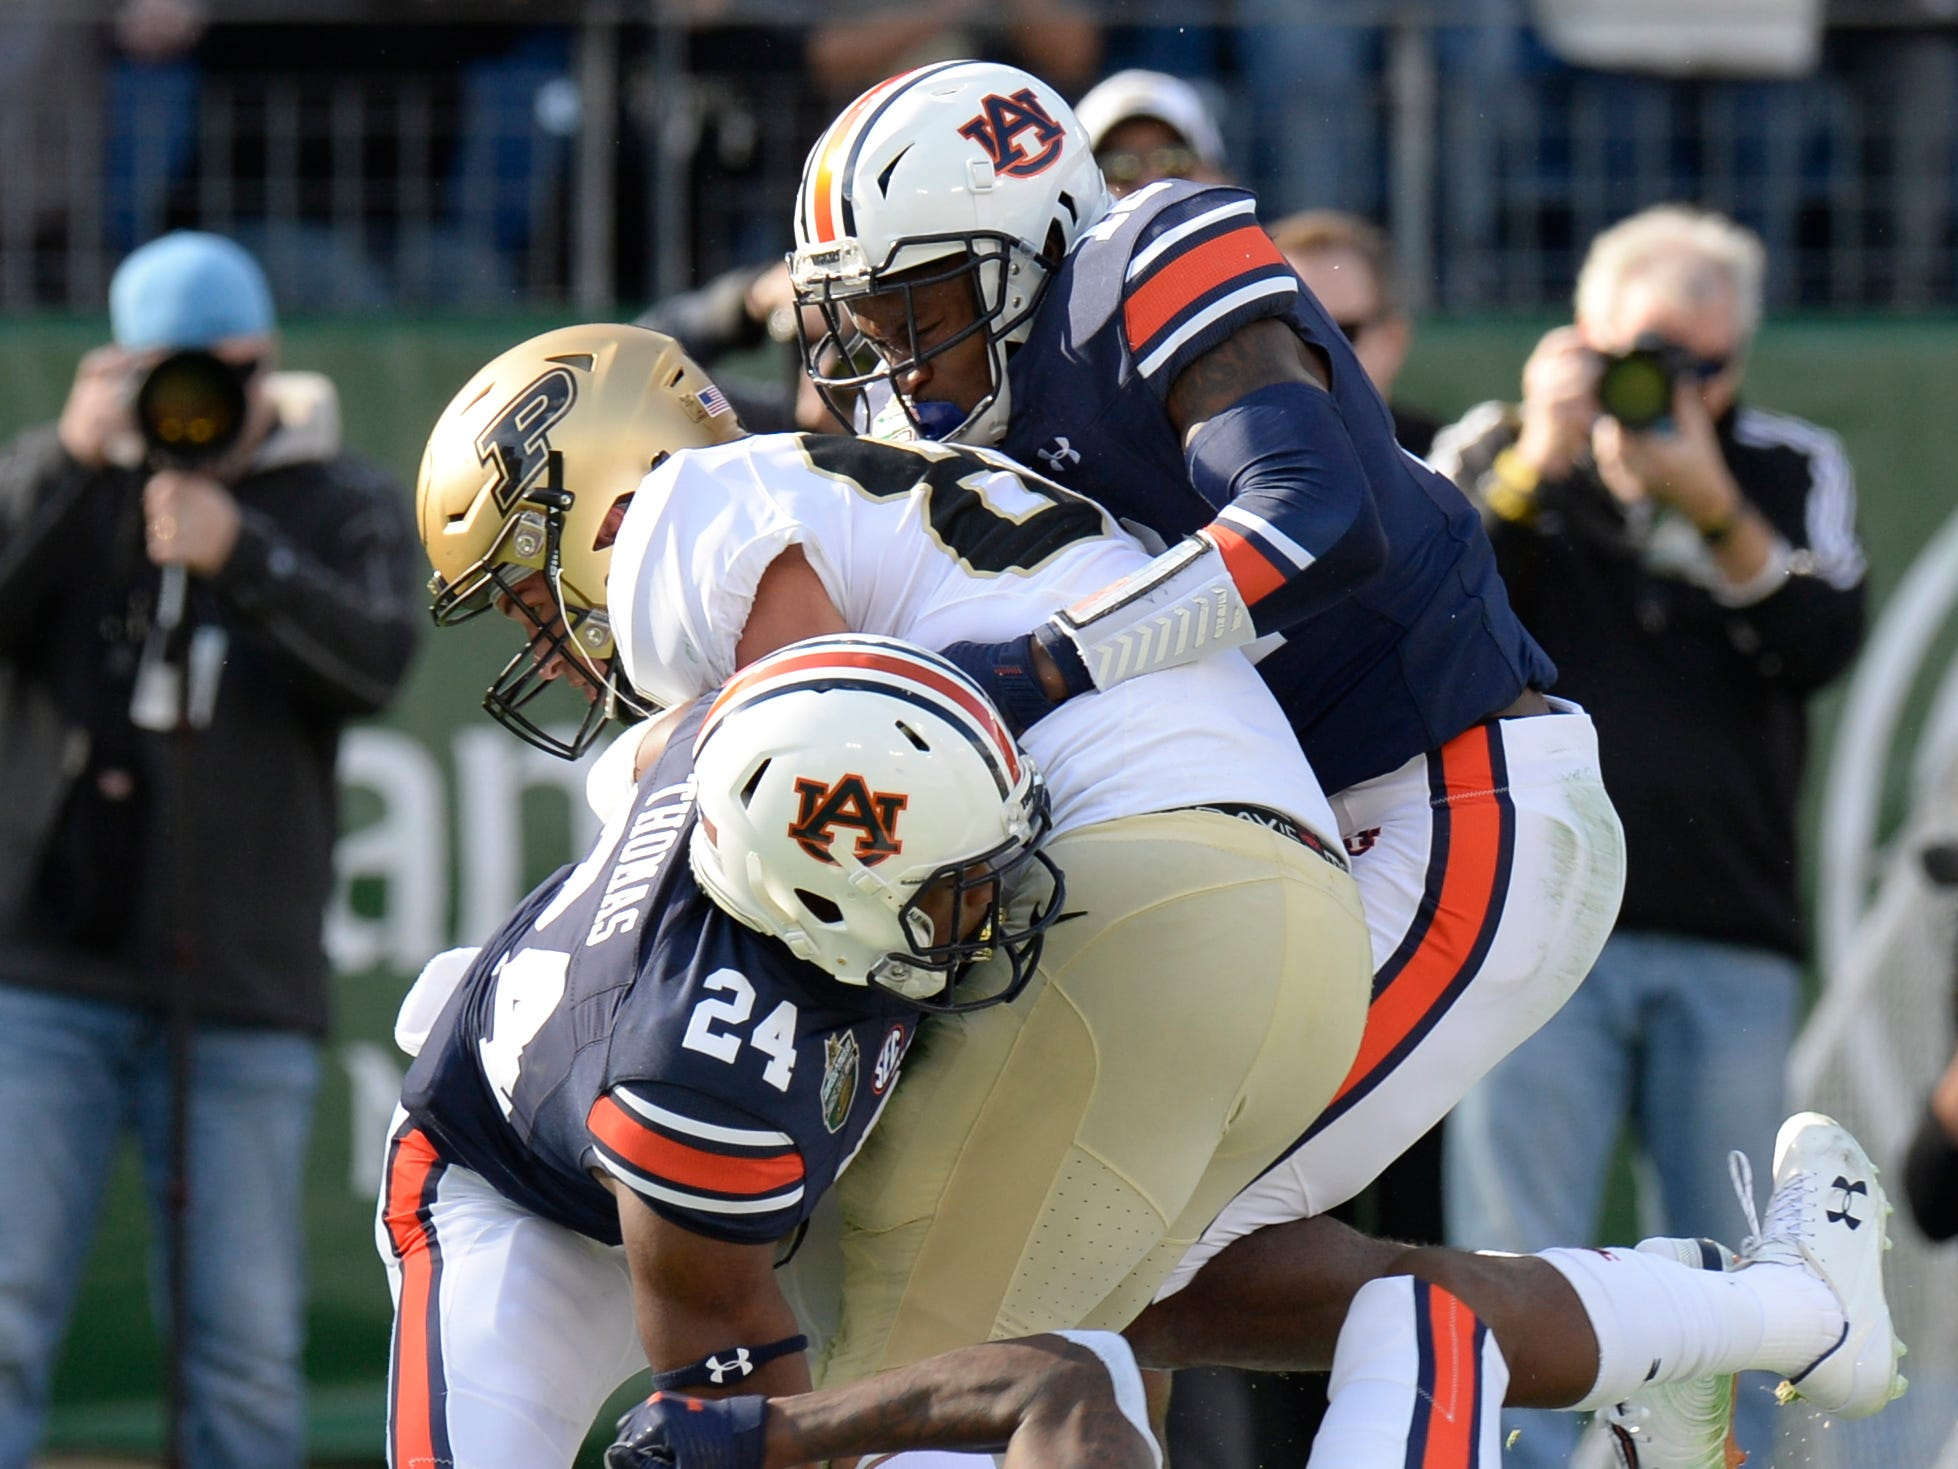 Auburn defenders bring down Purdue running back Markell Jones (8) in the first half of the Music City Bowl NCAA college football game Friday, Dec. 28, 2018, at Nissan Stadium in Nashville, Tenn.